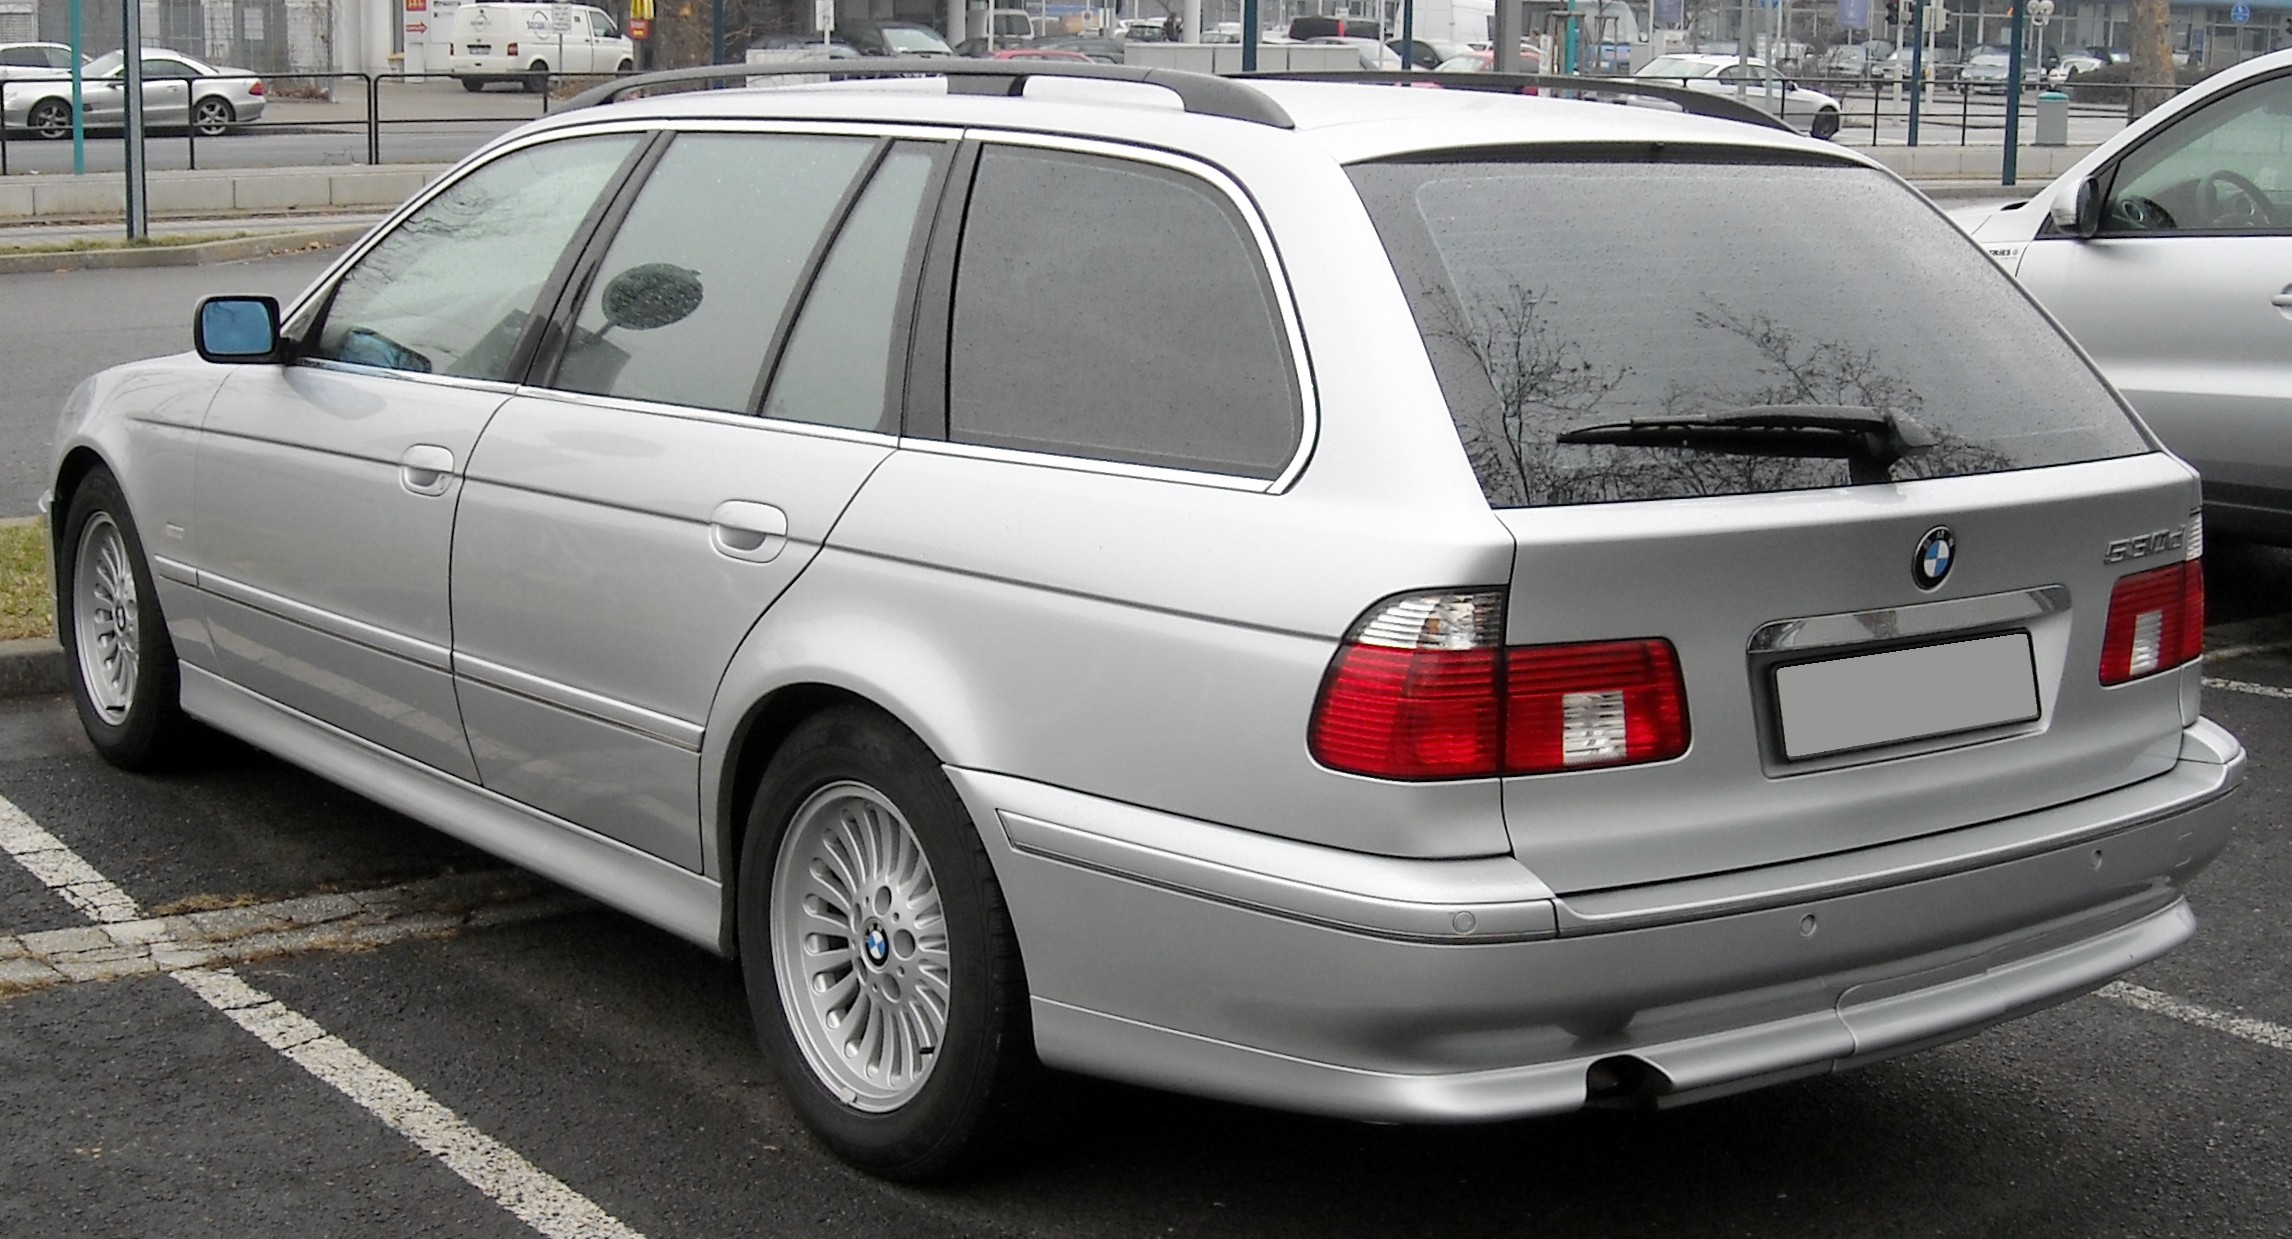 File:BMW E39 Touring rear 20090204.jpg - Wikimedia Commons